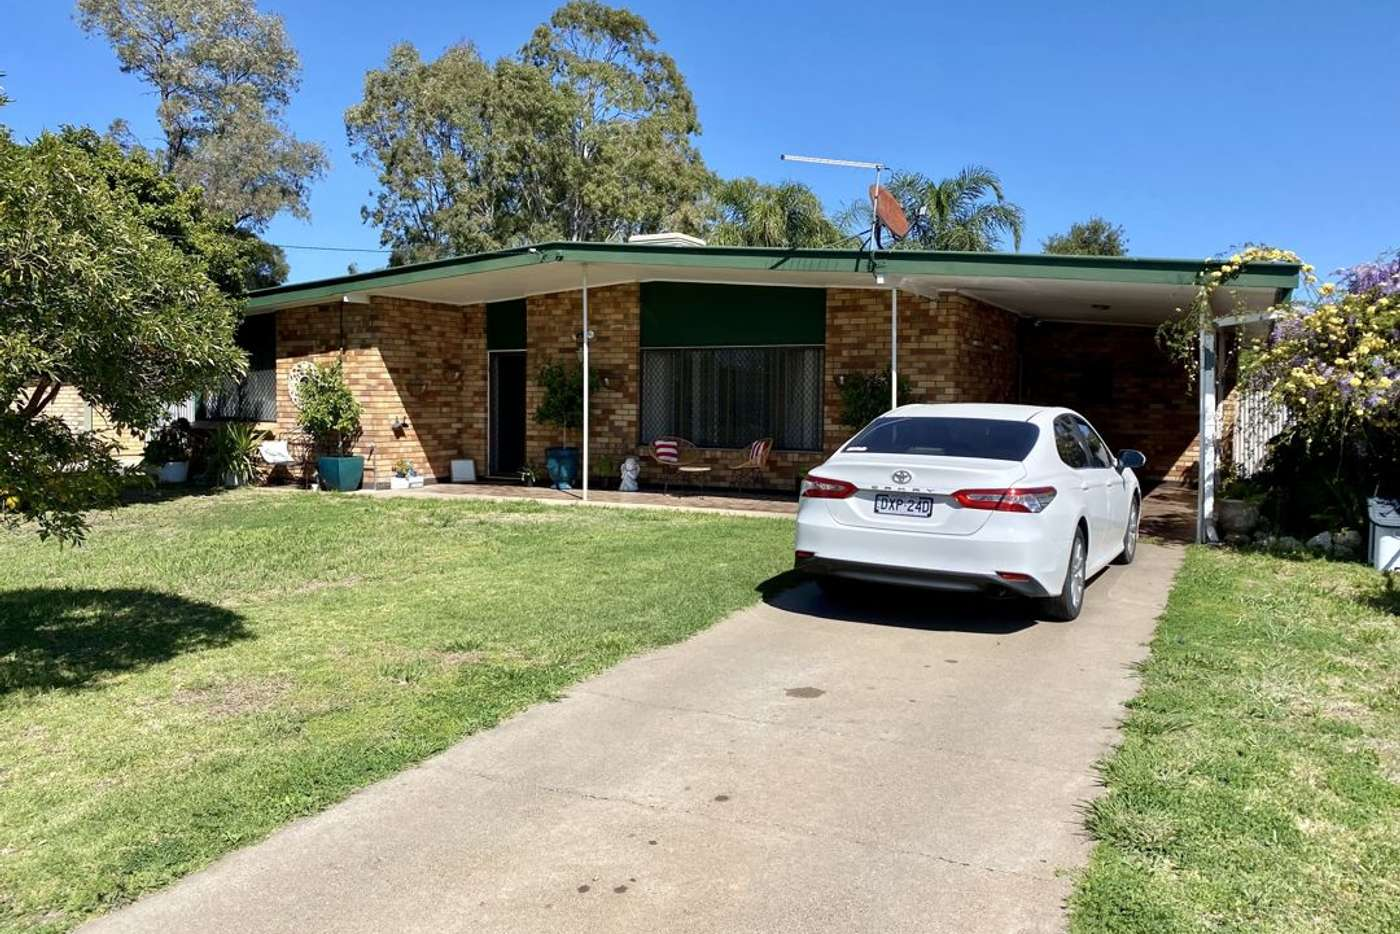 Main view of Homely house listing, 403 CHESTER STREET, Moree NSW 2400